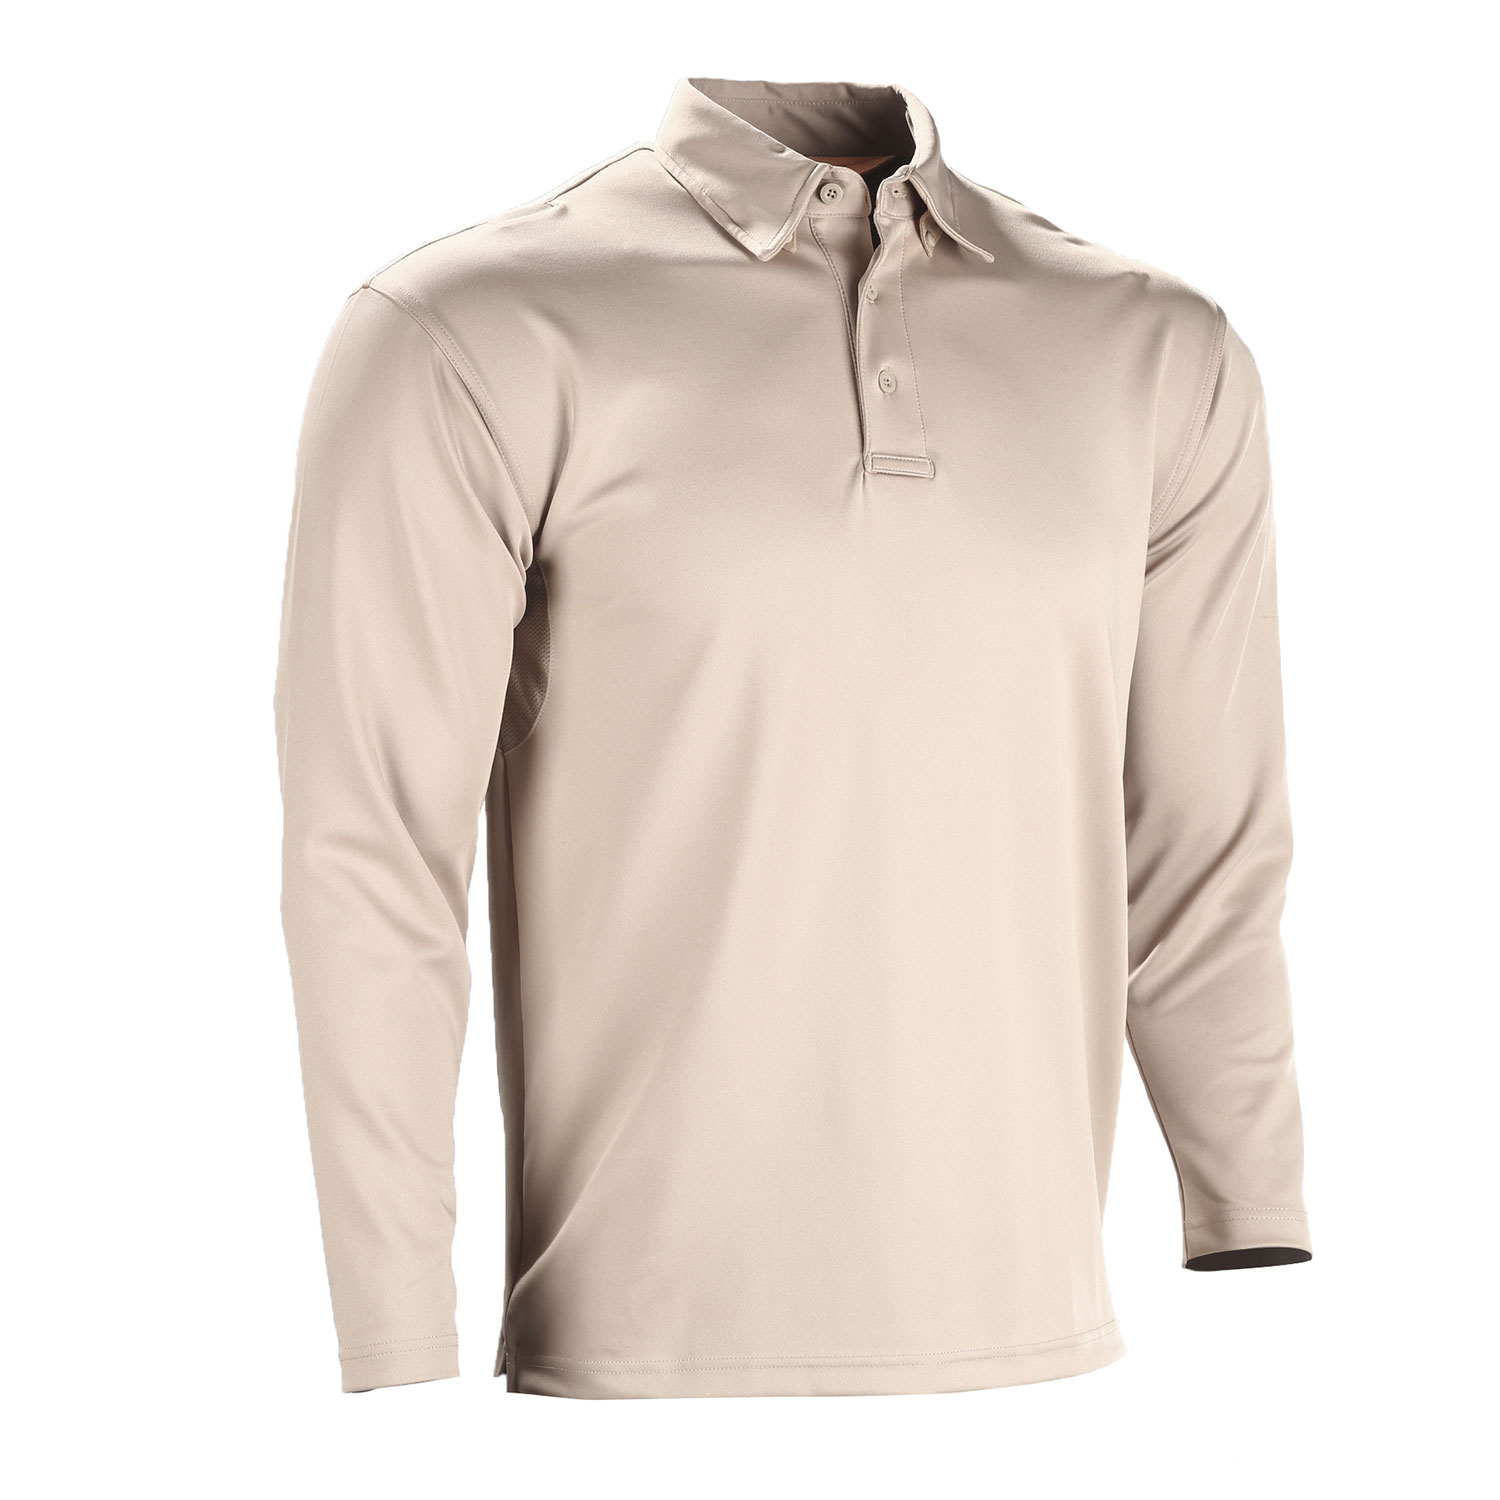 a96b52a455ff33 PROPPER I.C.E. Performance Long Sleeve Polo Shirt